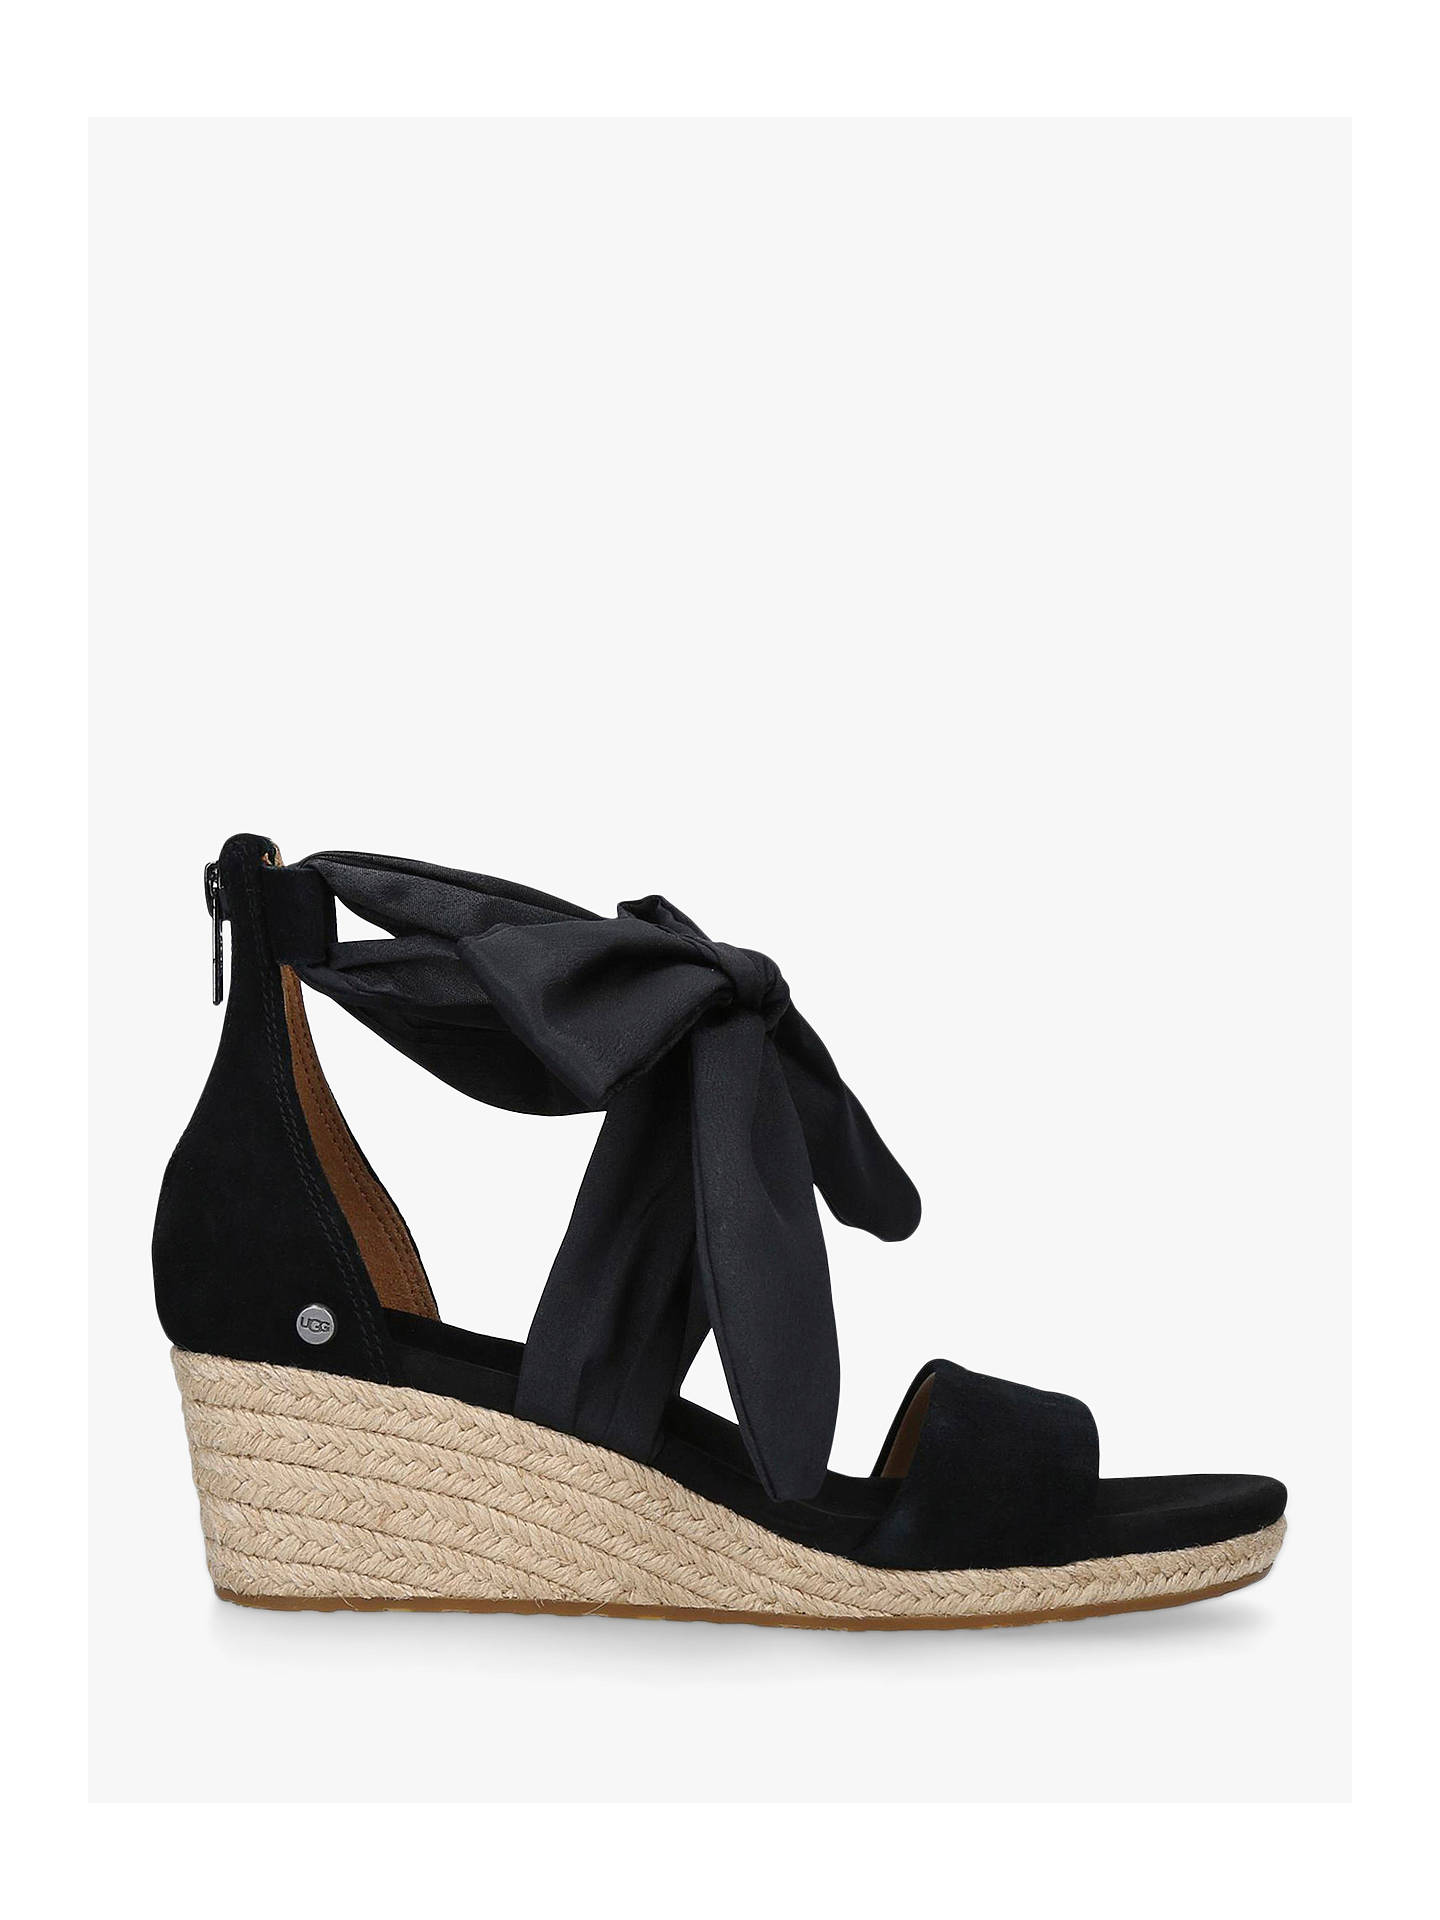 27e5c159d47 UGG Trina Suede Tie Detail Wedge Heel Sandals at John Lewis & Partners